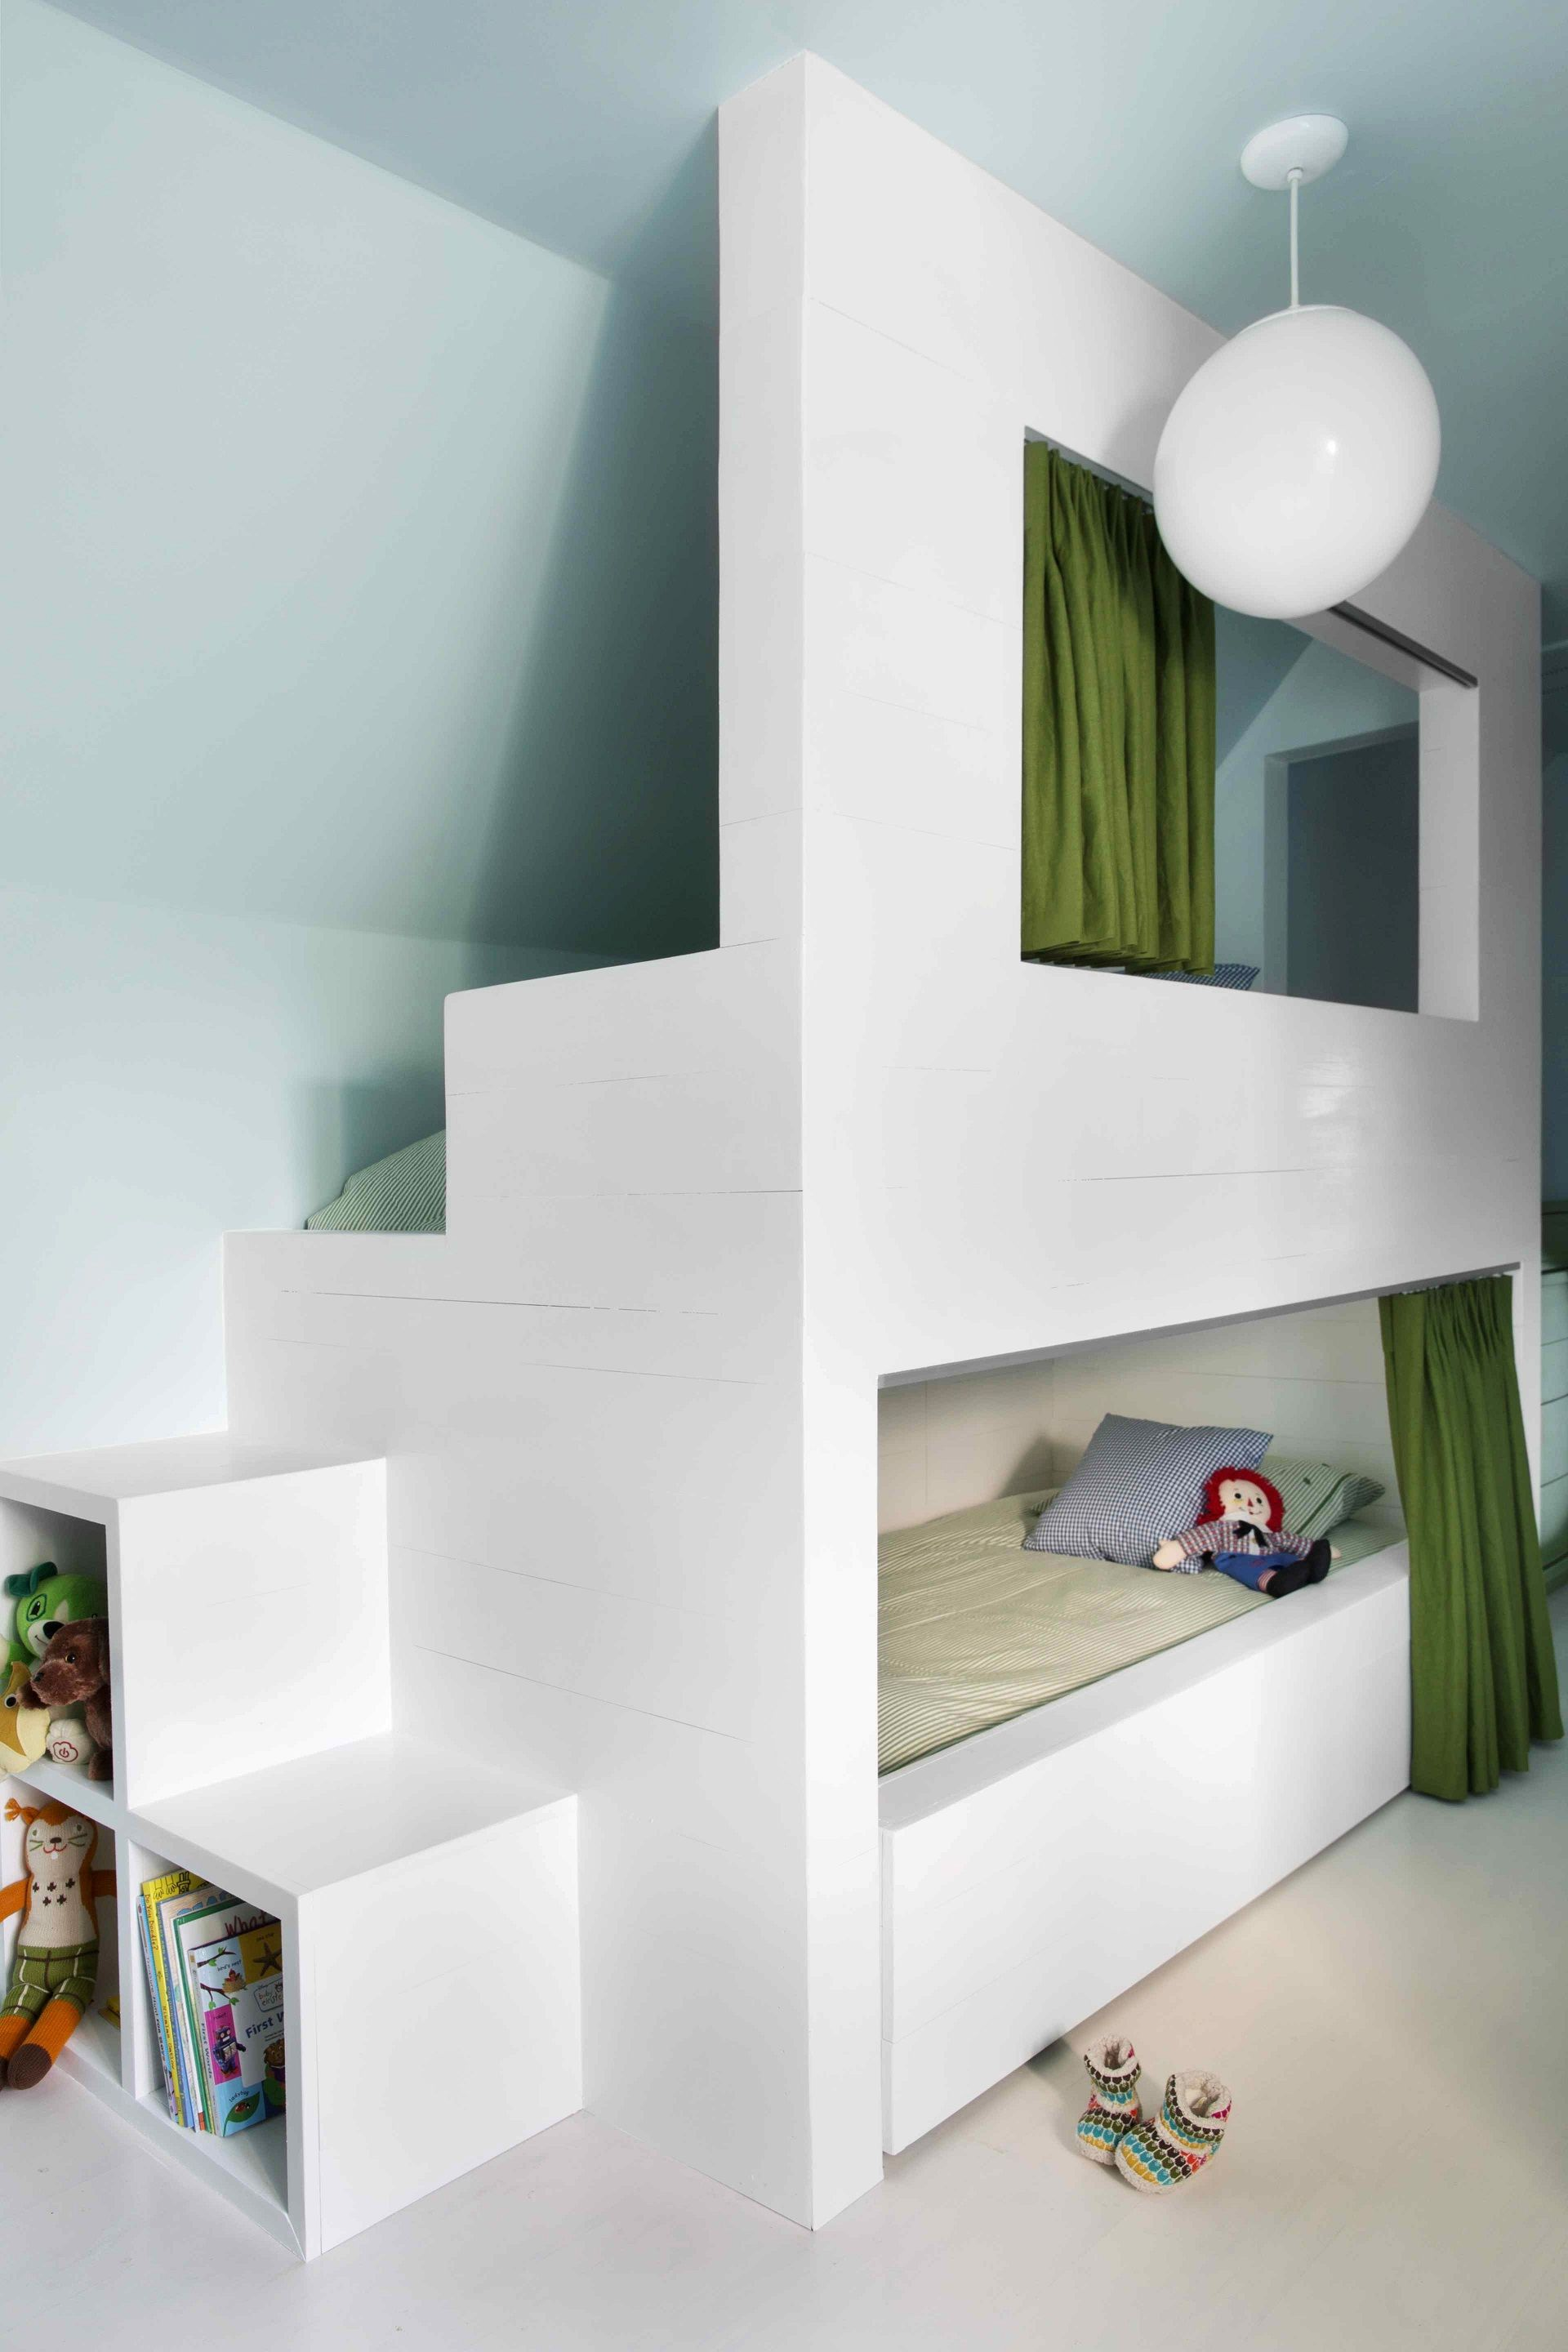 Secret Space Bunk Bed In An Attic Kids Room Interior Design